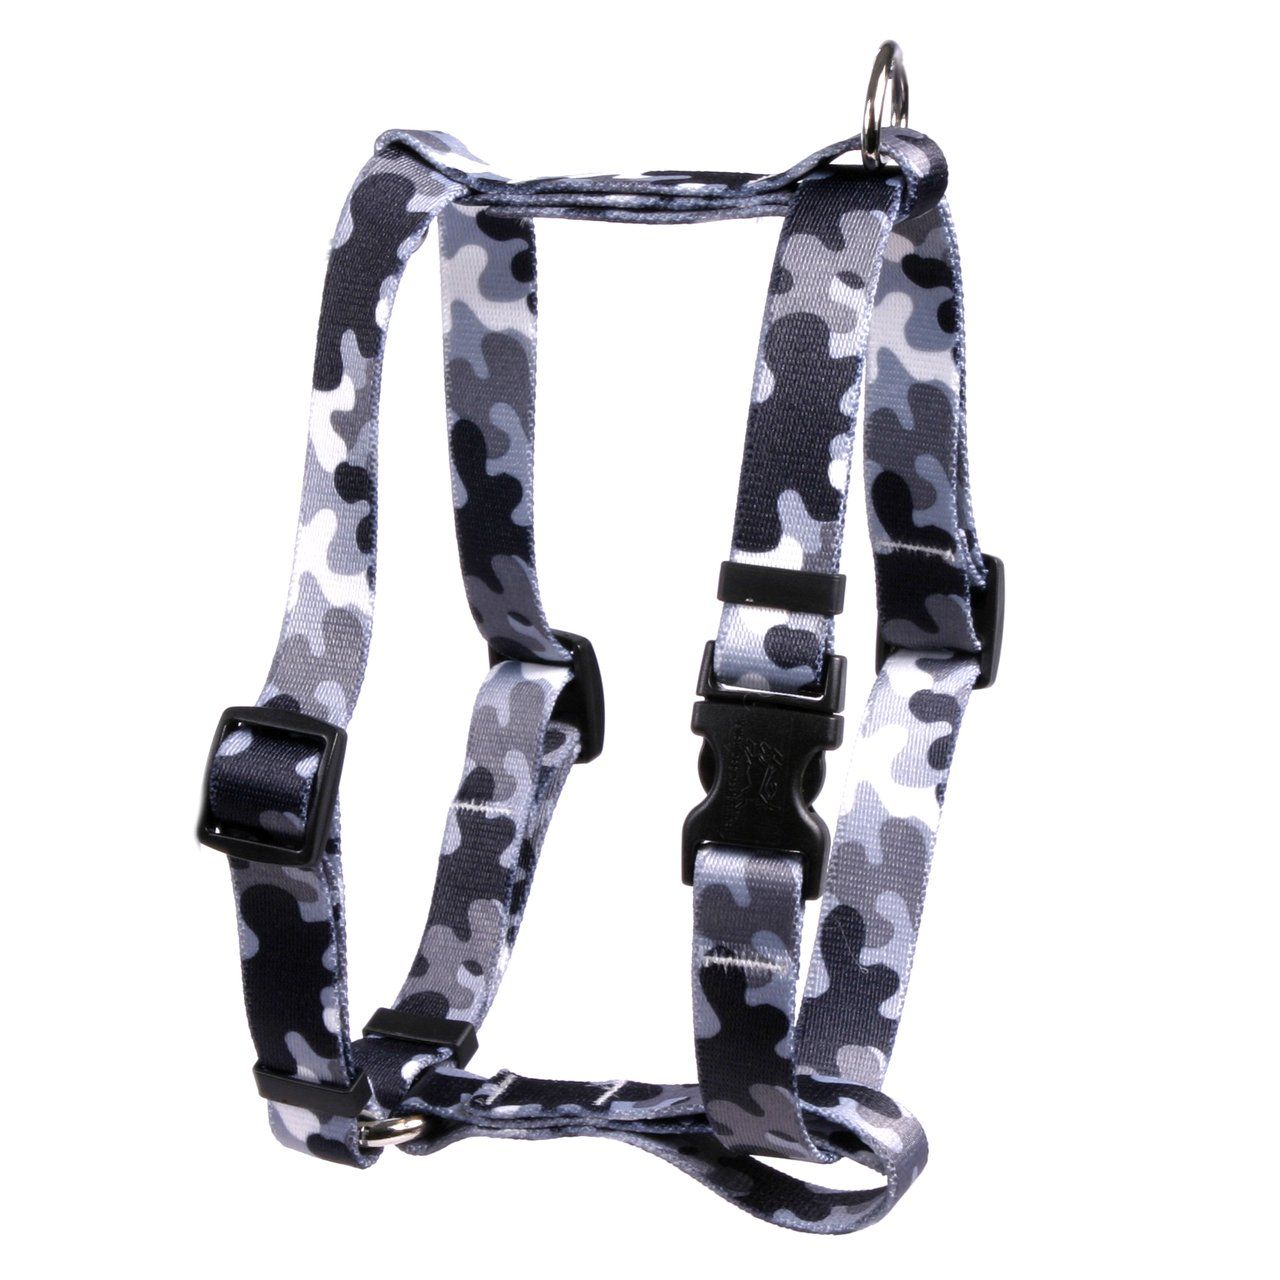 Yellow Dog Design Black and White Camo Roman Style H Dog Harness, Large